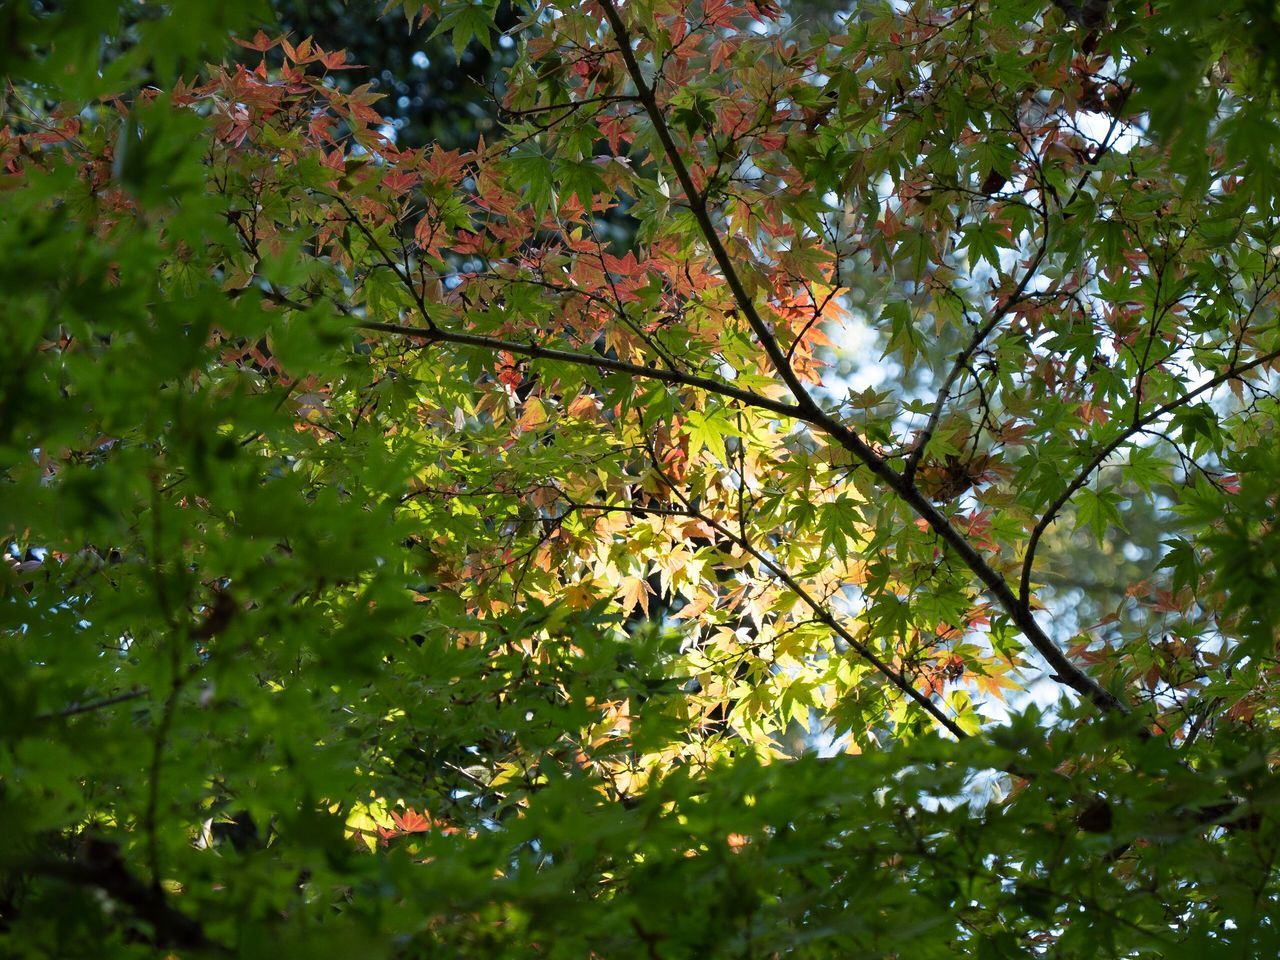 LOW ANGLE VIEW OF MAPLE TREE IN FOREST